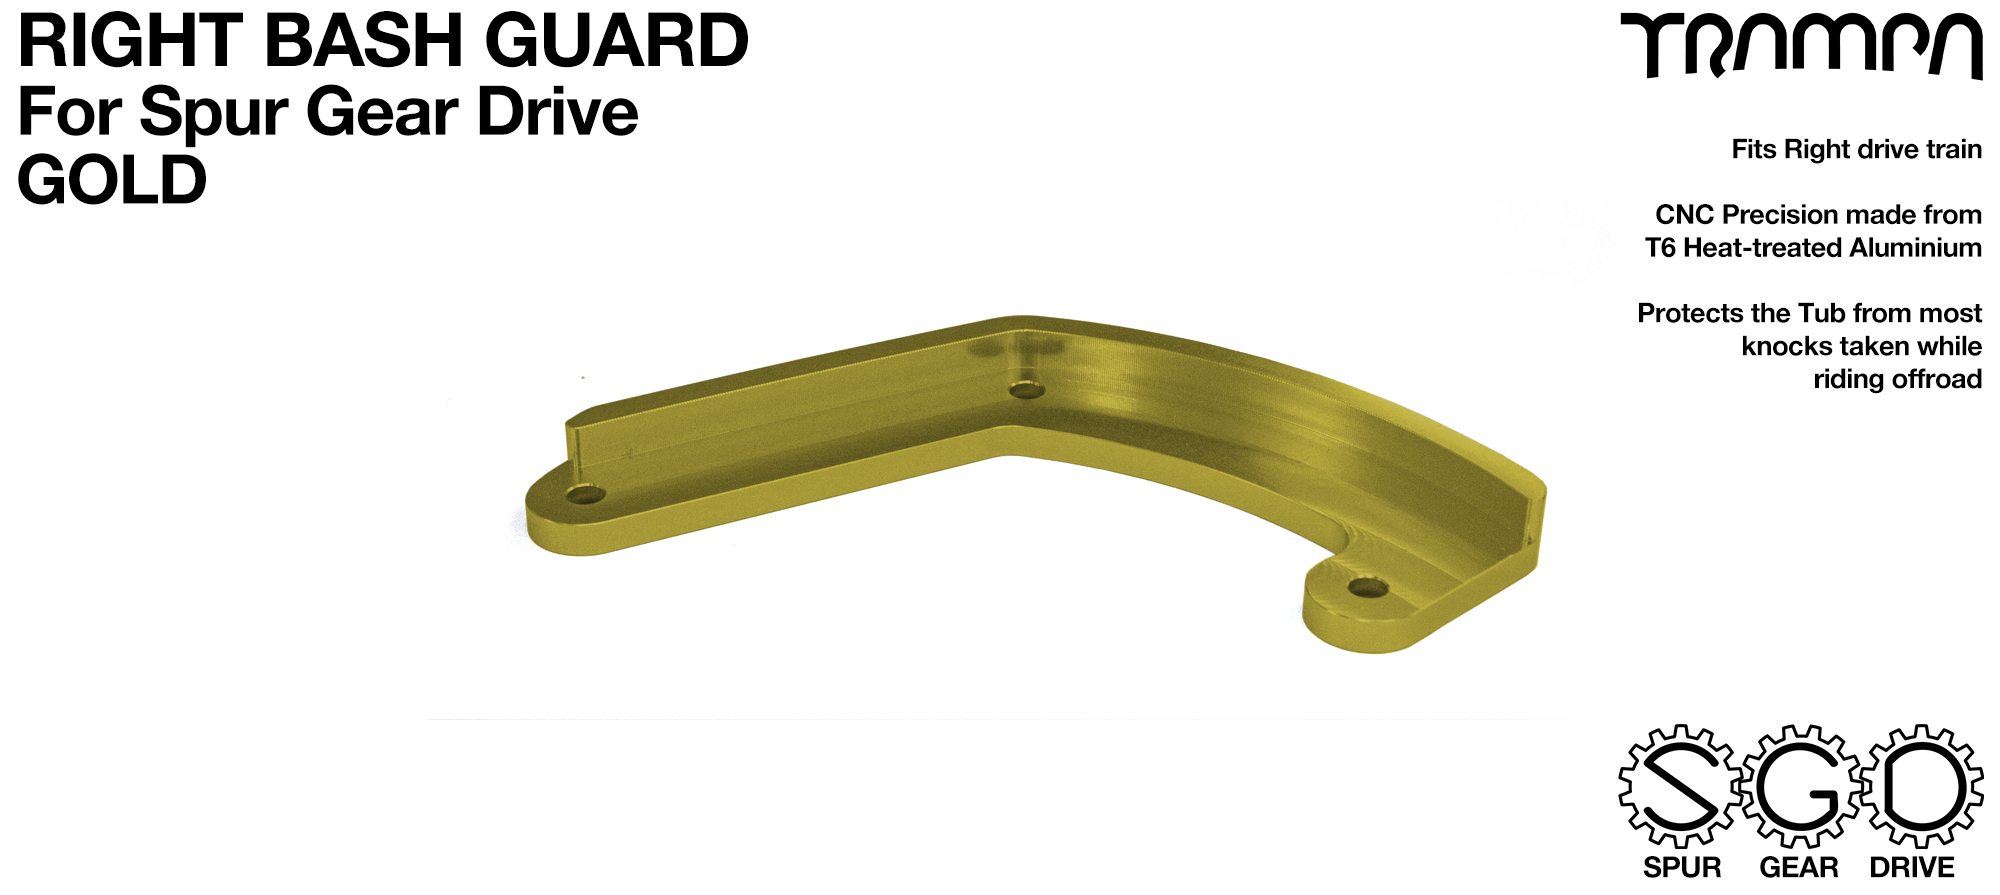 MkII Spur Gear Drive Bash Guard - RIGHT Side - GOLD